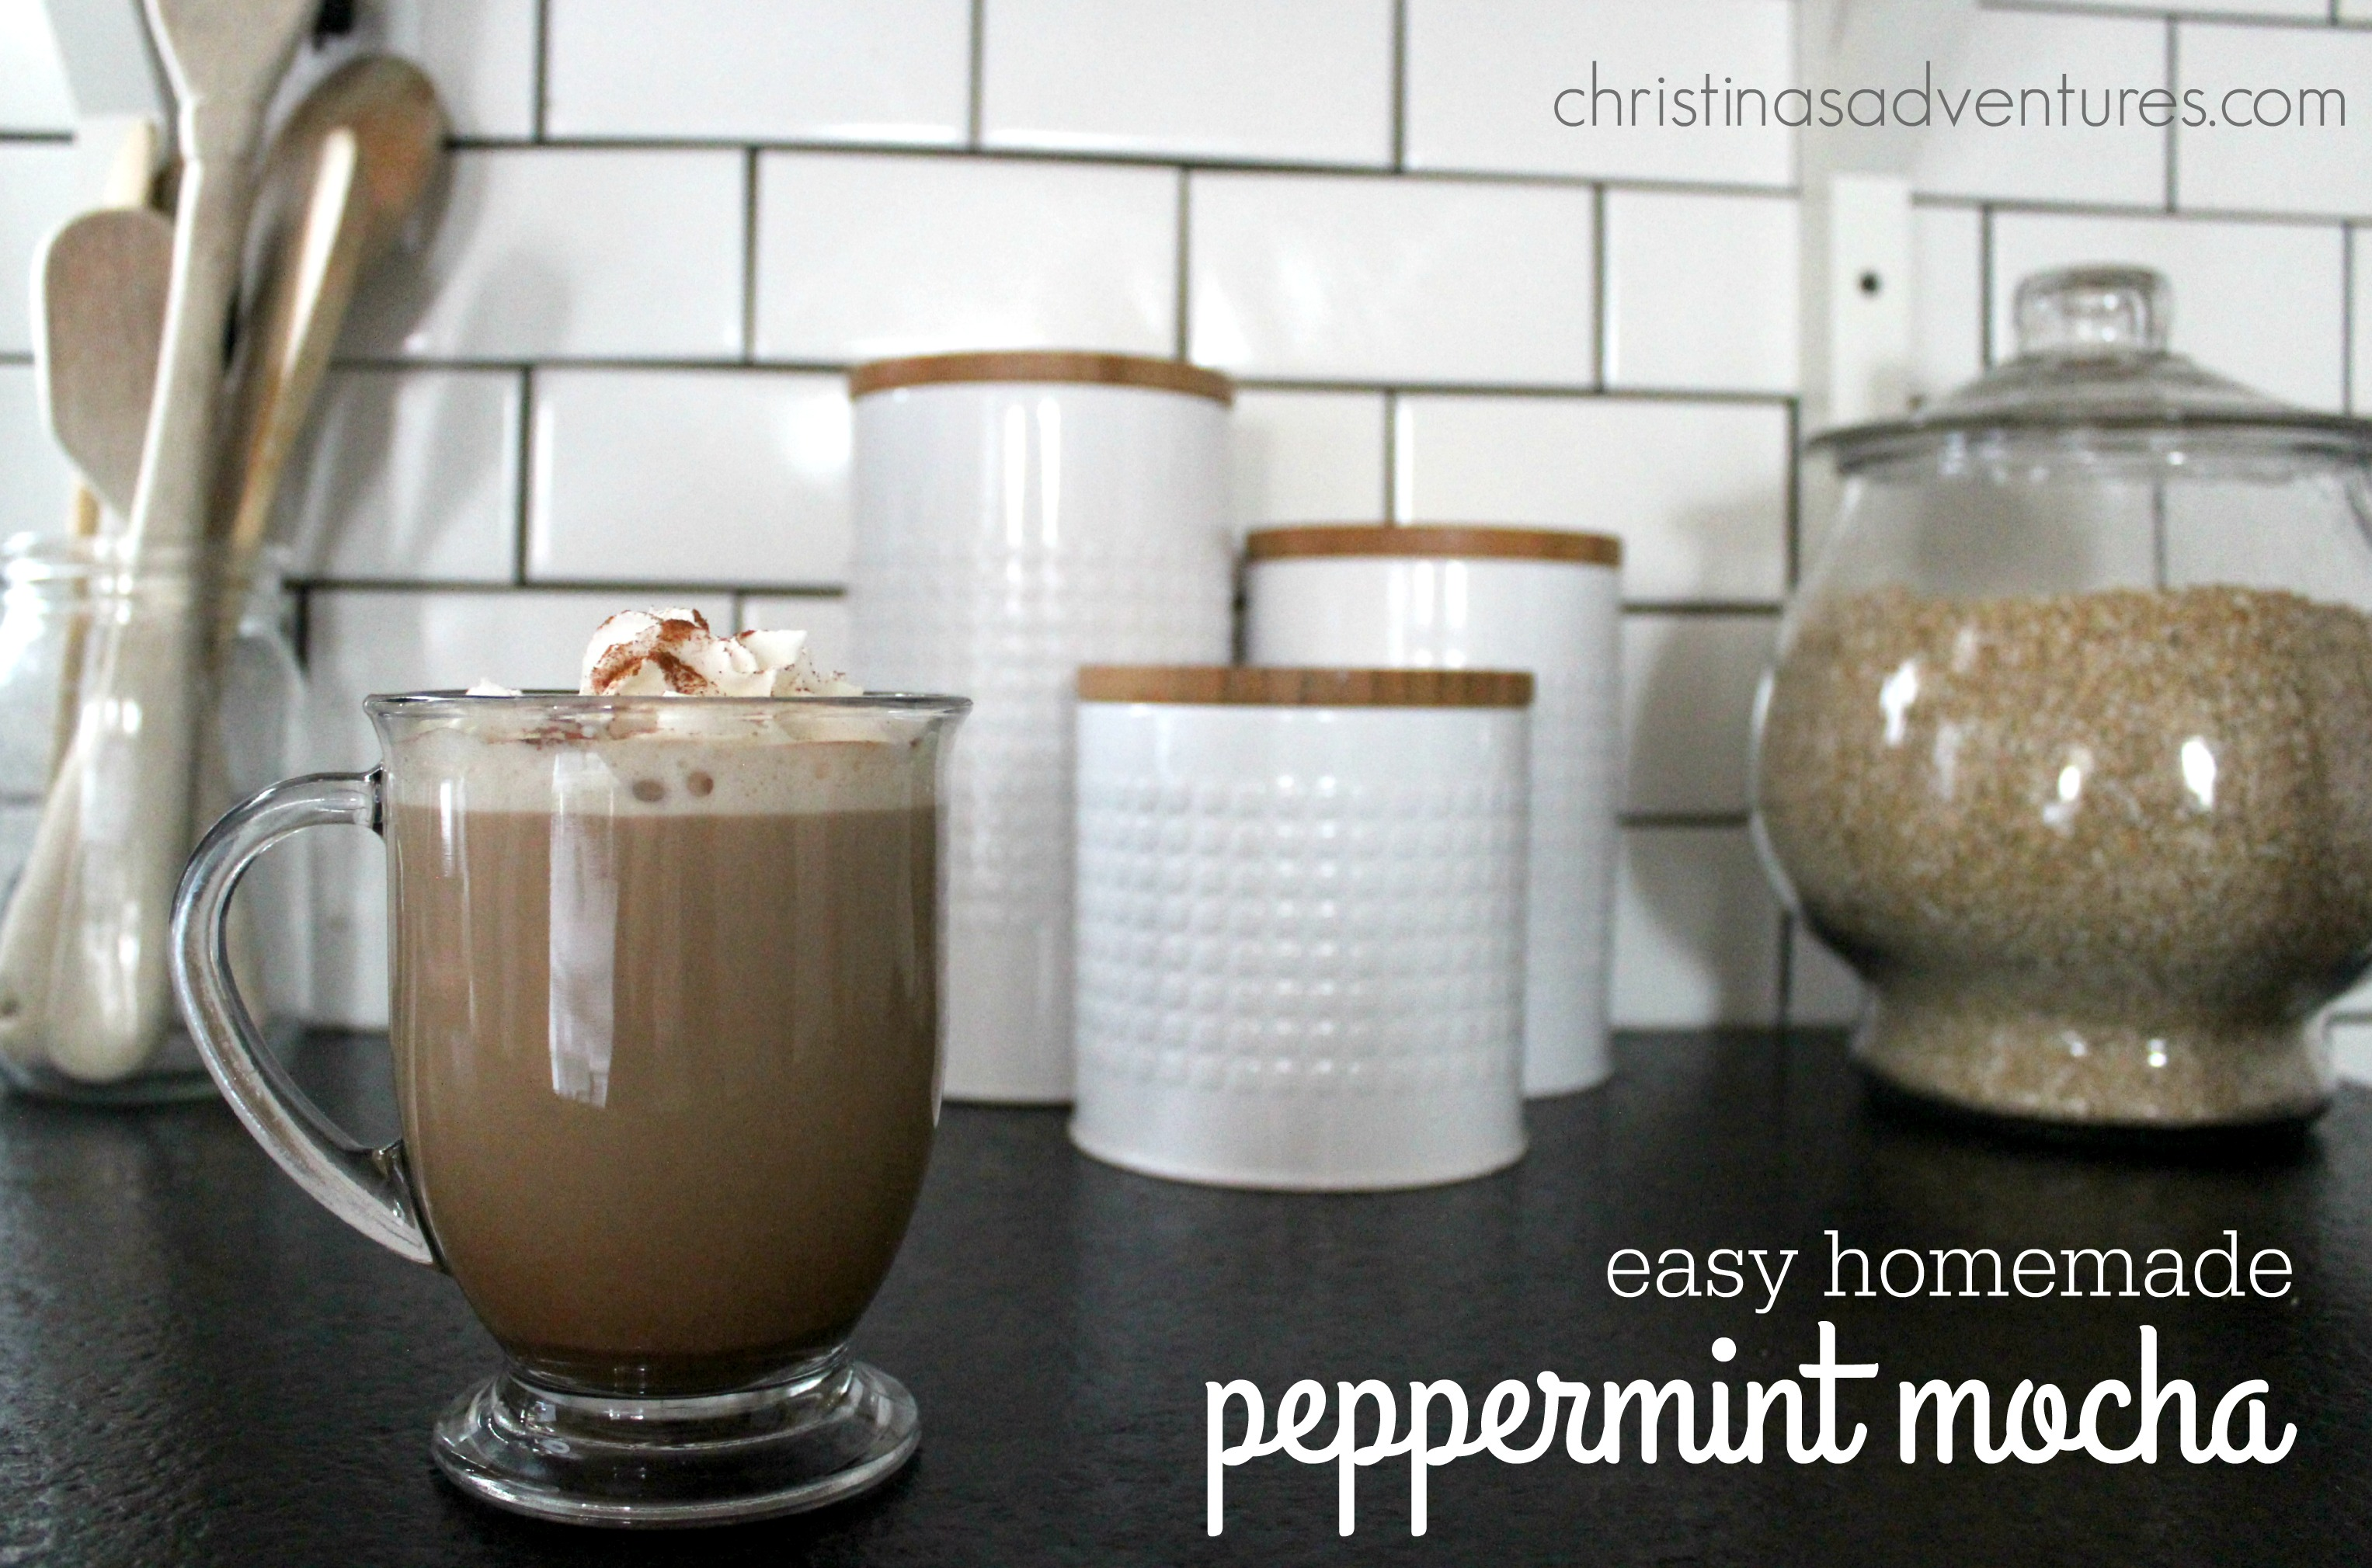 Easy Homemade Peppermint Mocha